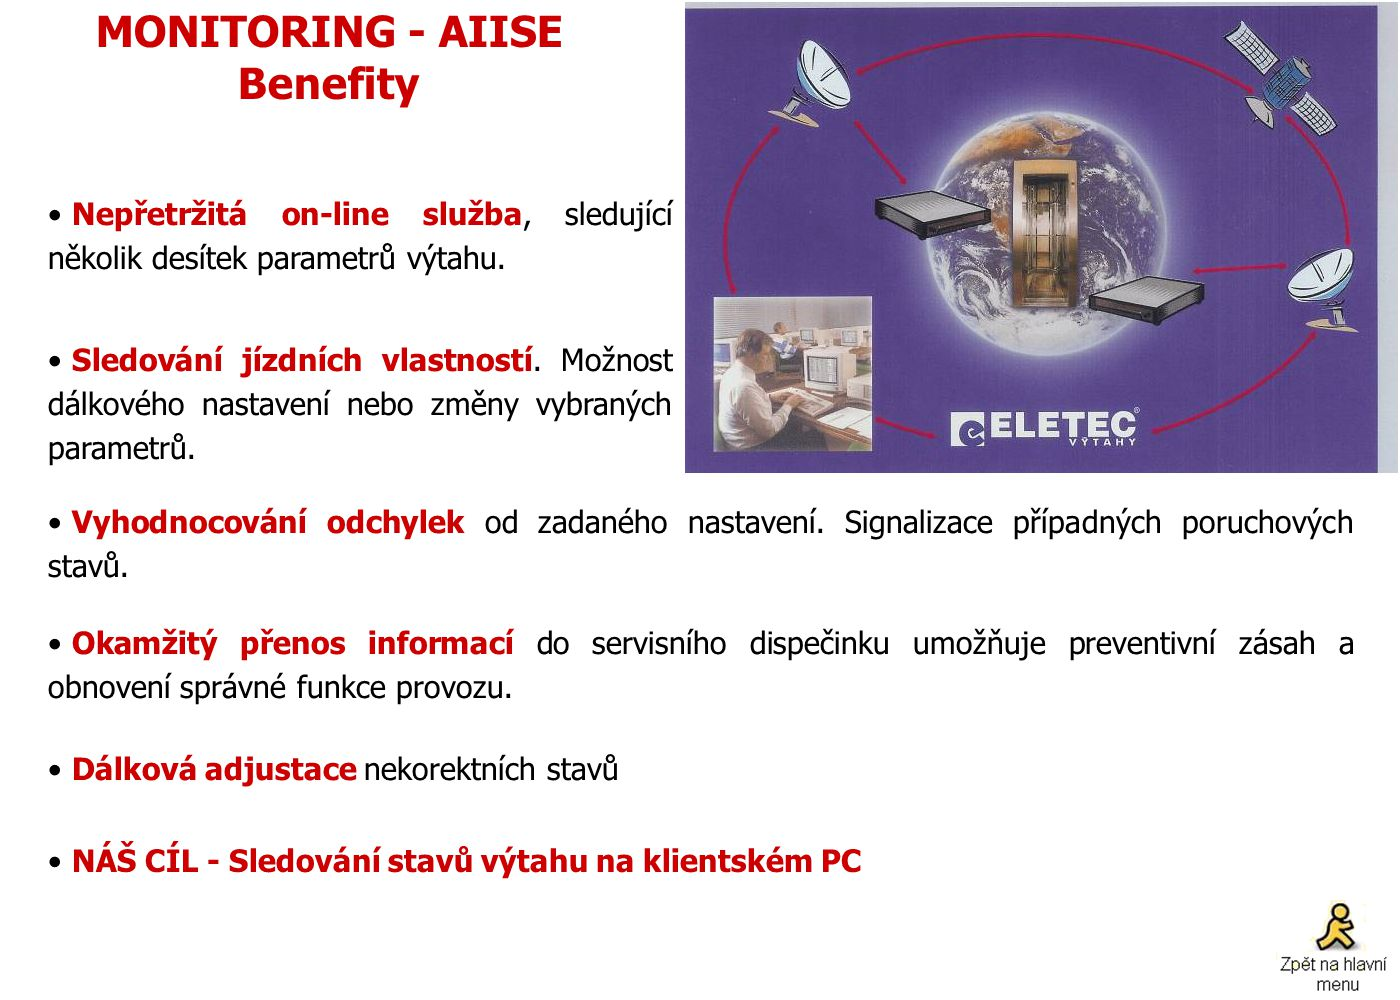 MONITORING - AIISE Benefity